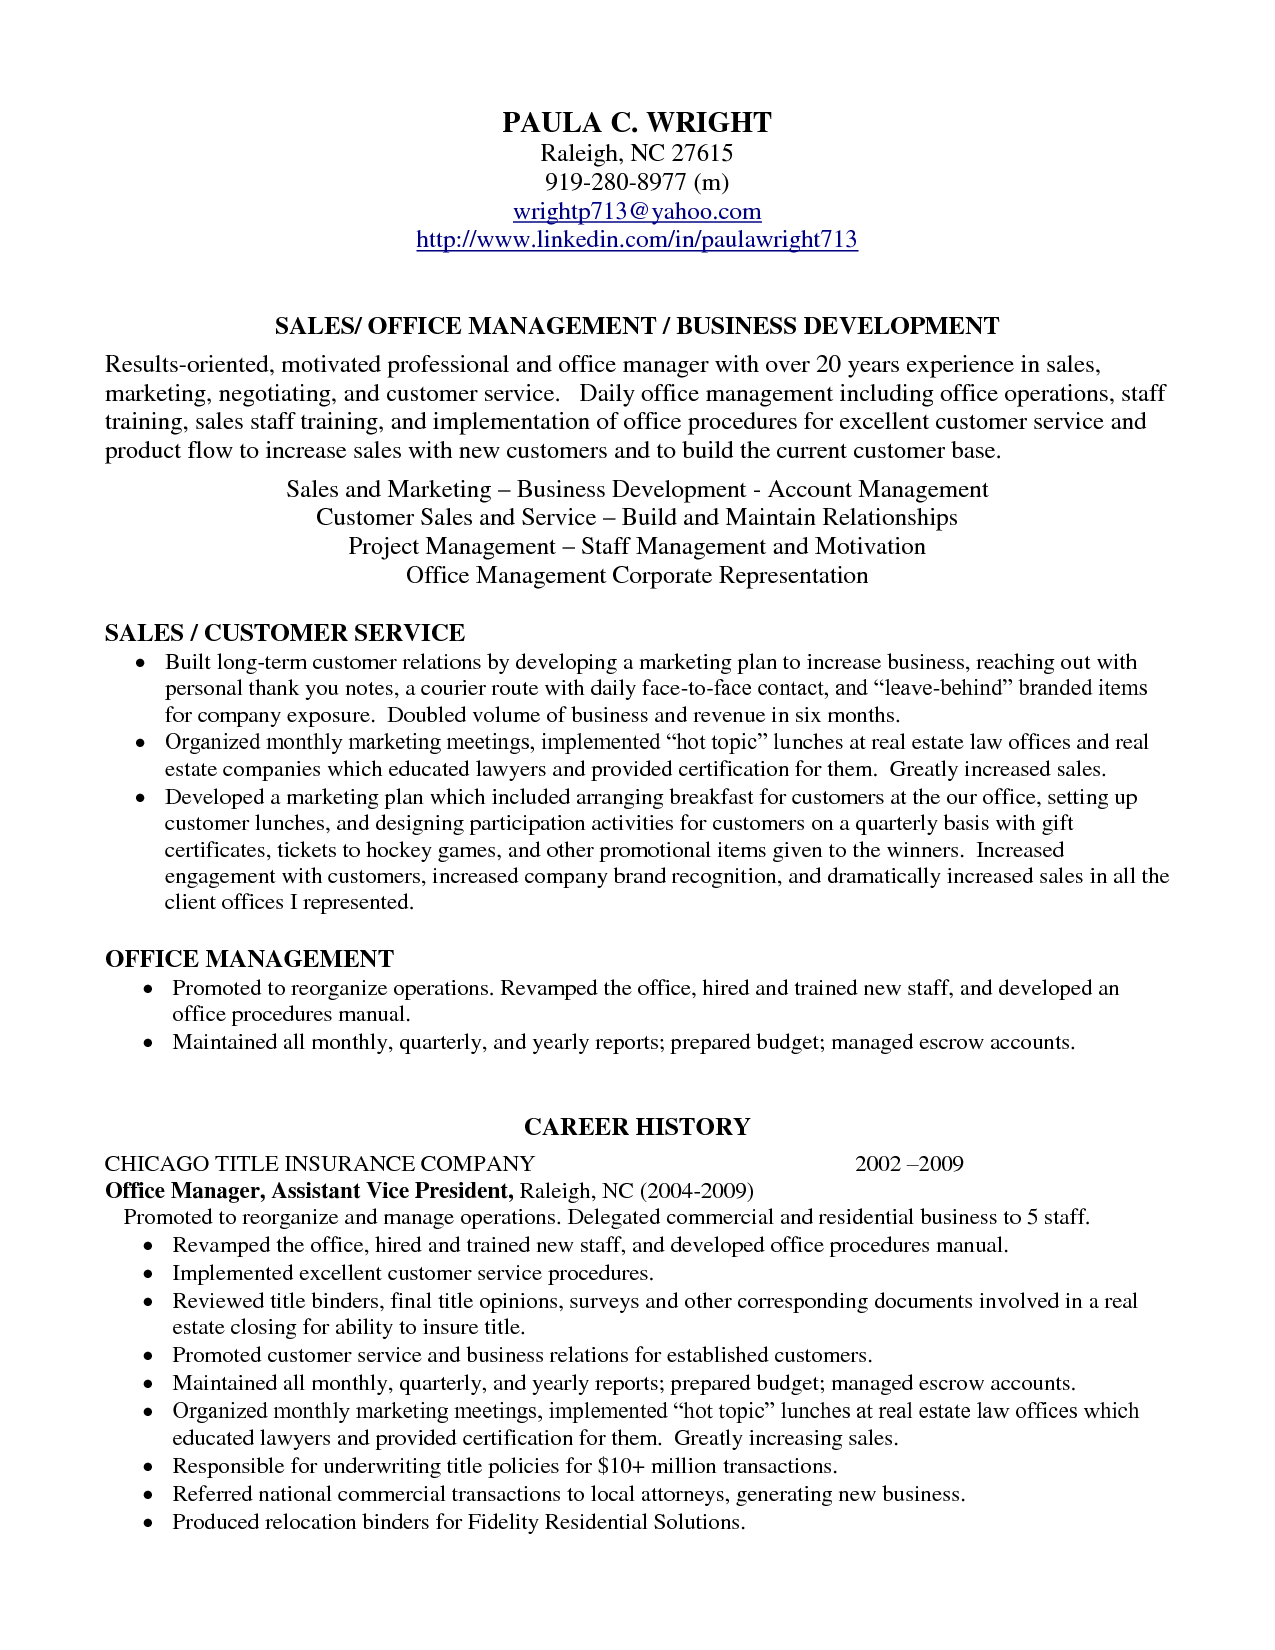 Resume Writing  Linkedin Resume Examples